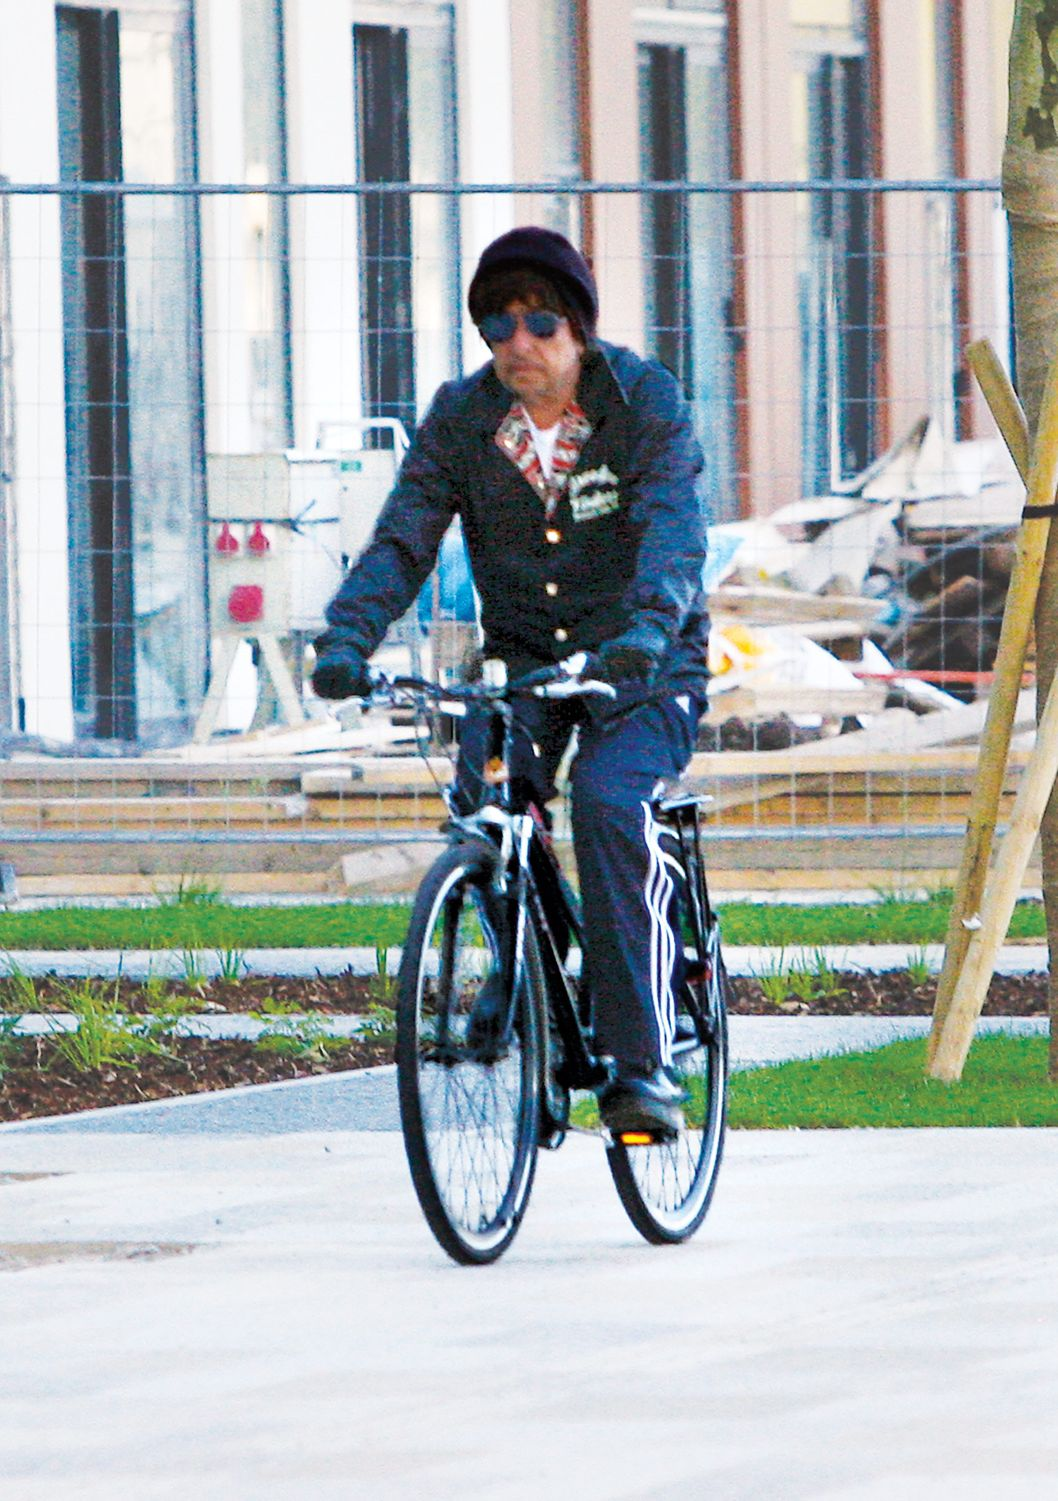 Exclusive... 5178467 ****USA, CANADA, AUSTRALIA, NEW ZEALAND ONLY**** Exclusive... Singer Bob Dylan looks a little bit down while doing a little biking along the waterfront of river Dunaj during his day off in Bratislava (Slovakia), Germany on June 8, 2010. Bob Dylan performed on June 9, 2010. FameFlynet, Inc - Beverly Hills, CA, USA - +1 (818) 307-4813 RESTRICTIONS APPLY: USA ONLY